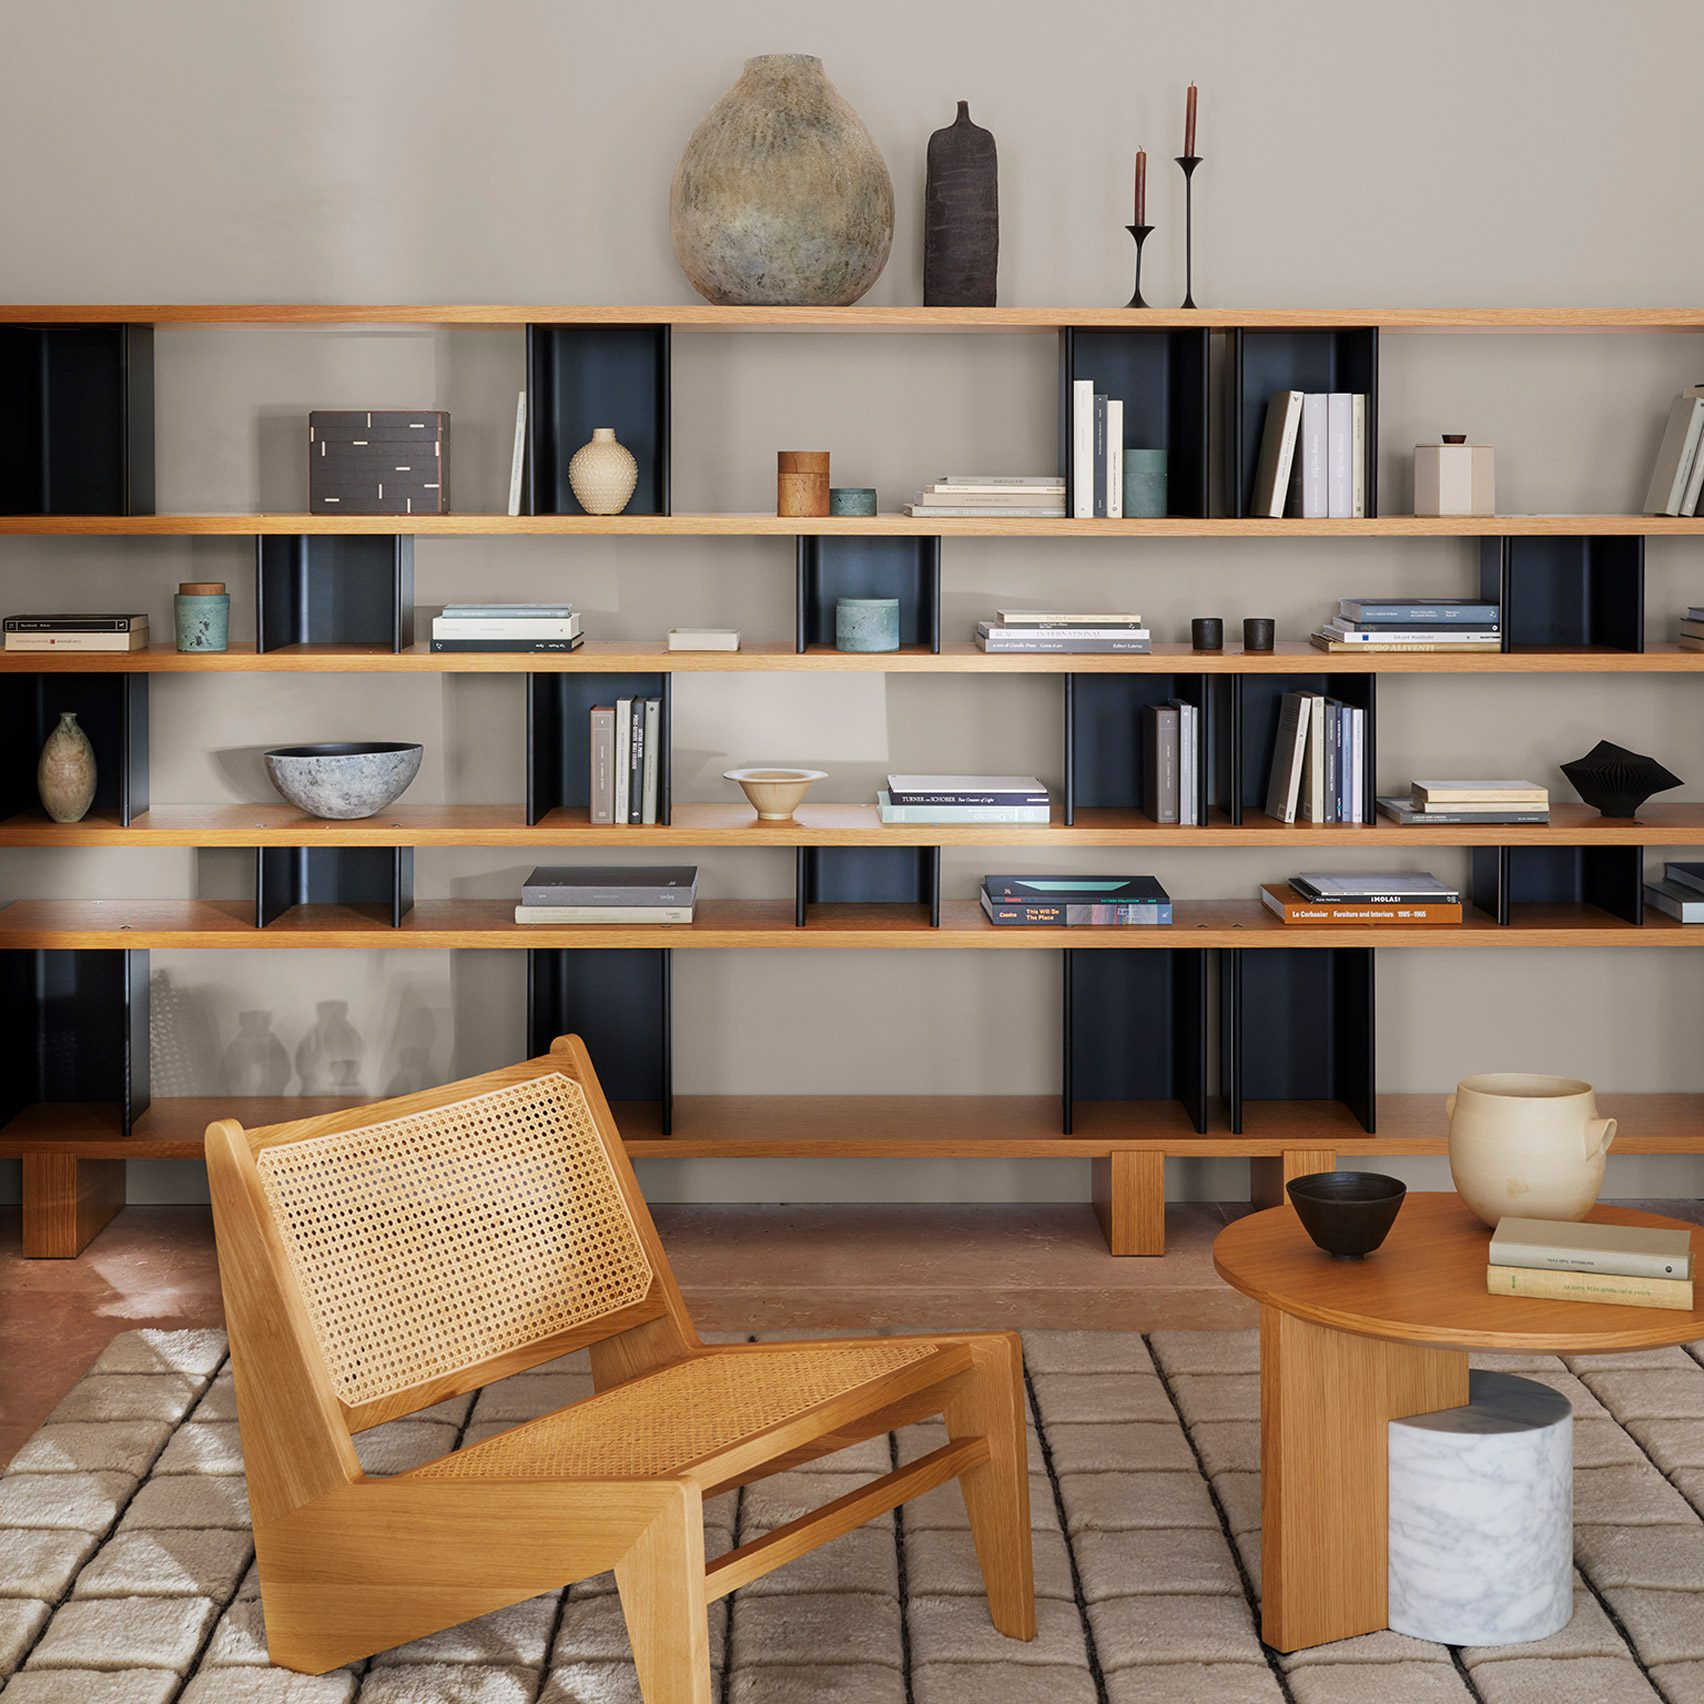 Nuage à Plots shelving system by Charlotte Perriand